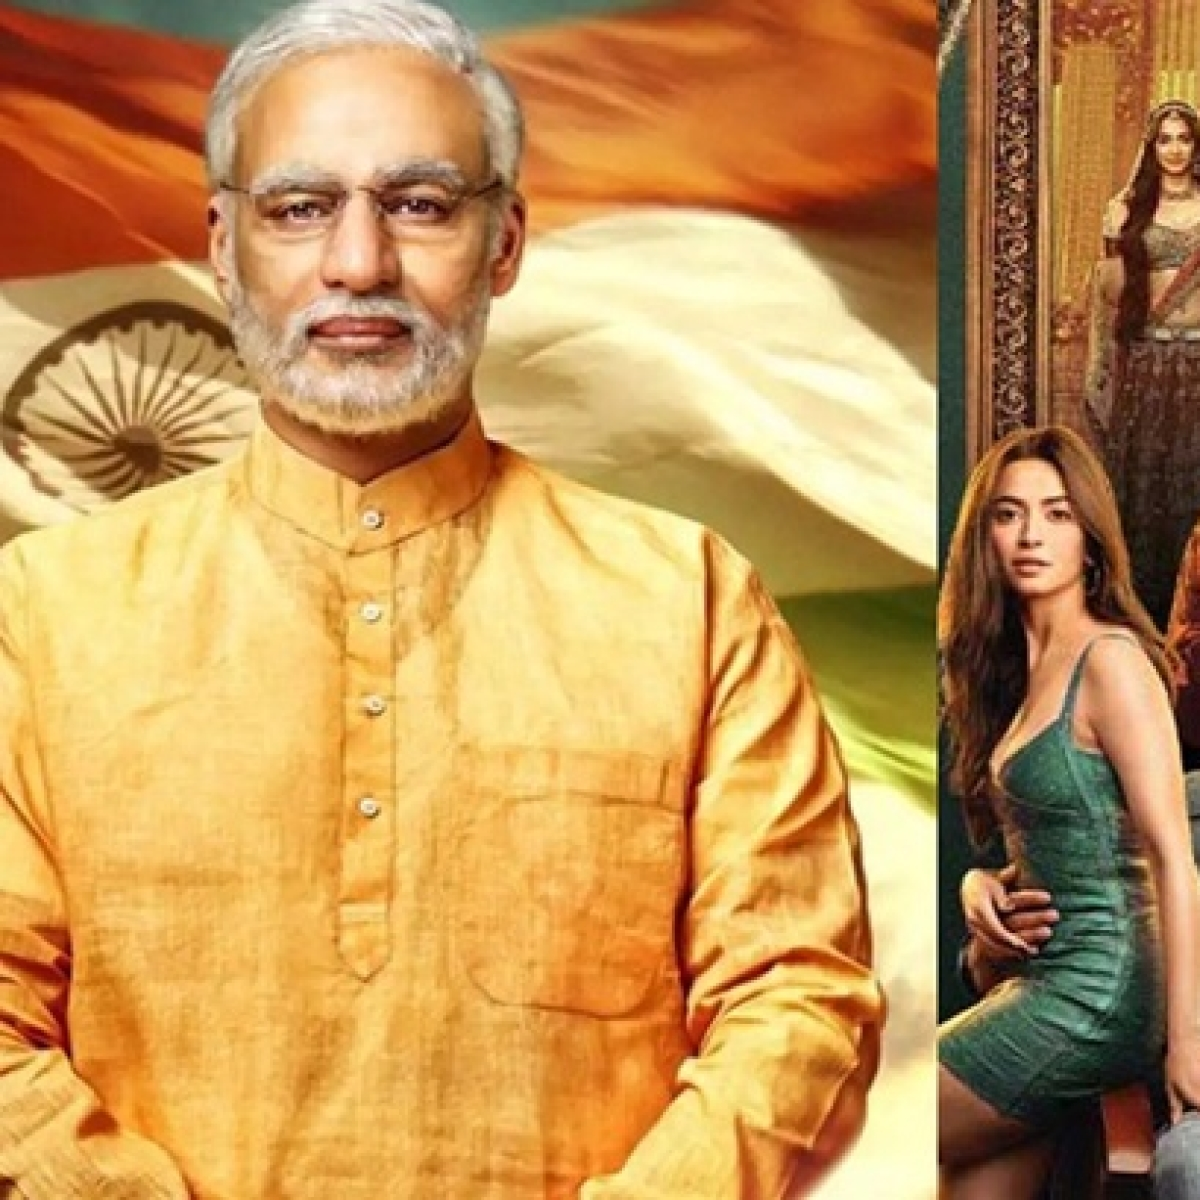 Worst Movies of 2019: From 'PM Narendra Modi' to 'Housefull 4'